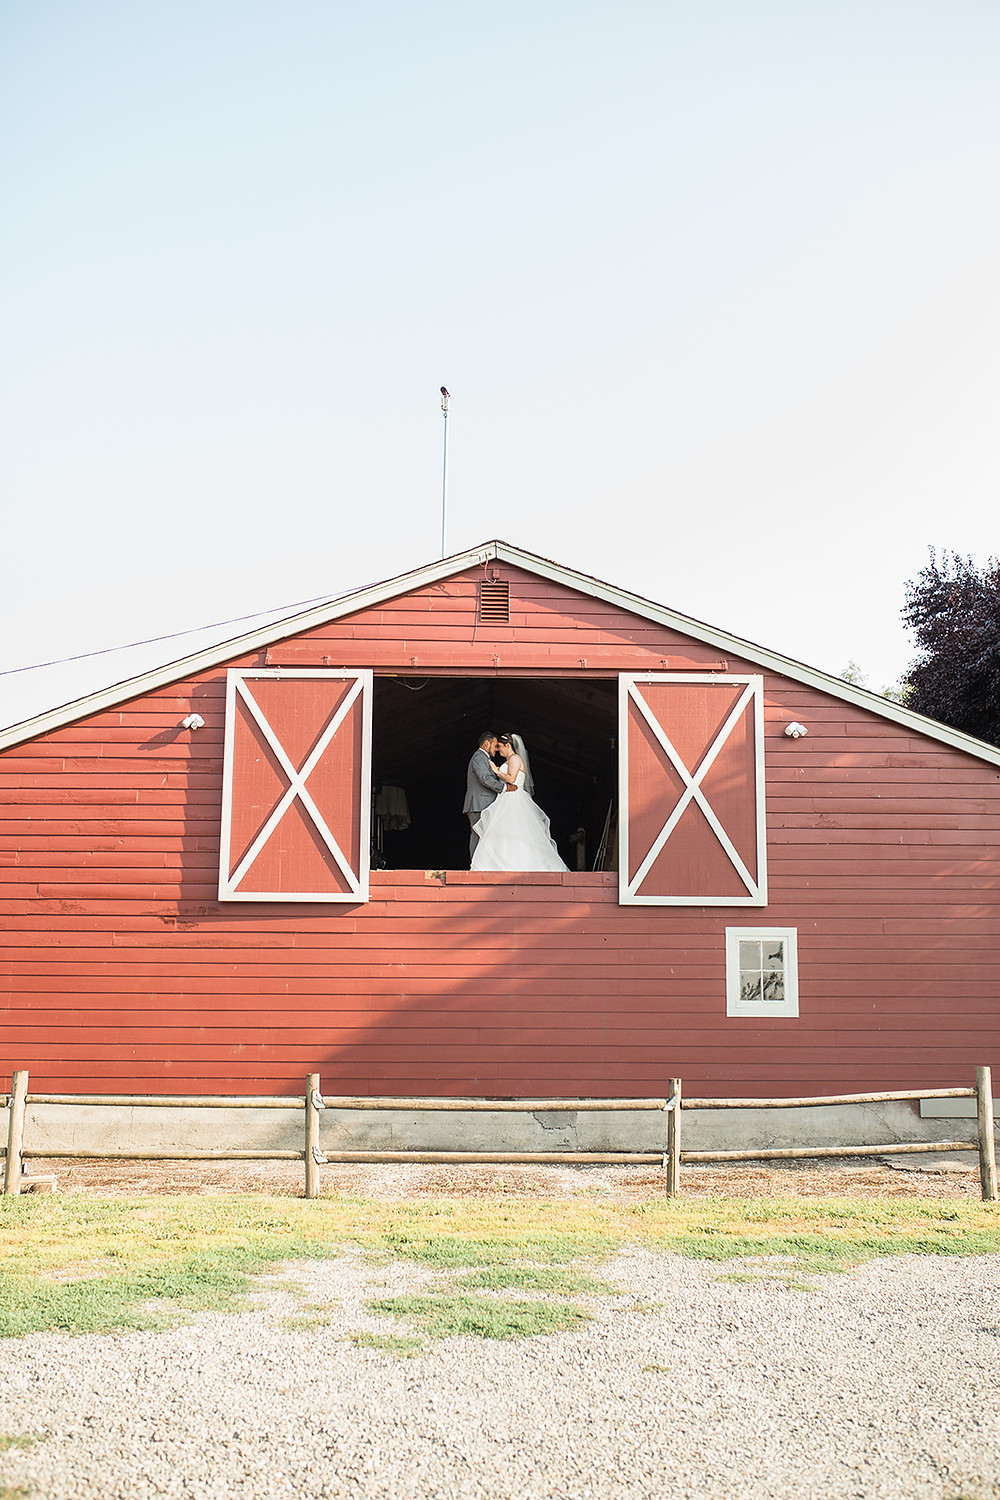 Photo of Craven Farm, a Snohomish wedding venue near Seattle, WA. | My Snohomish Wedding | Snohomish Wedding Planning